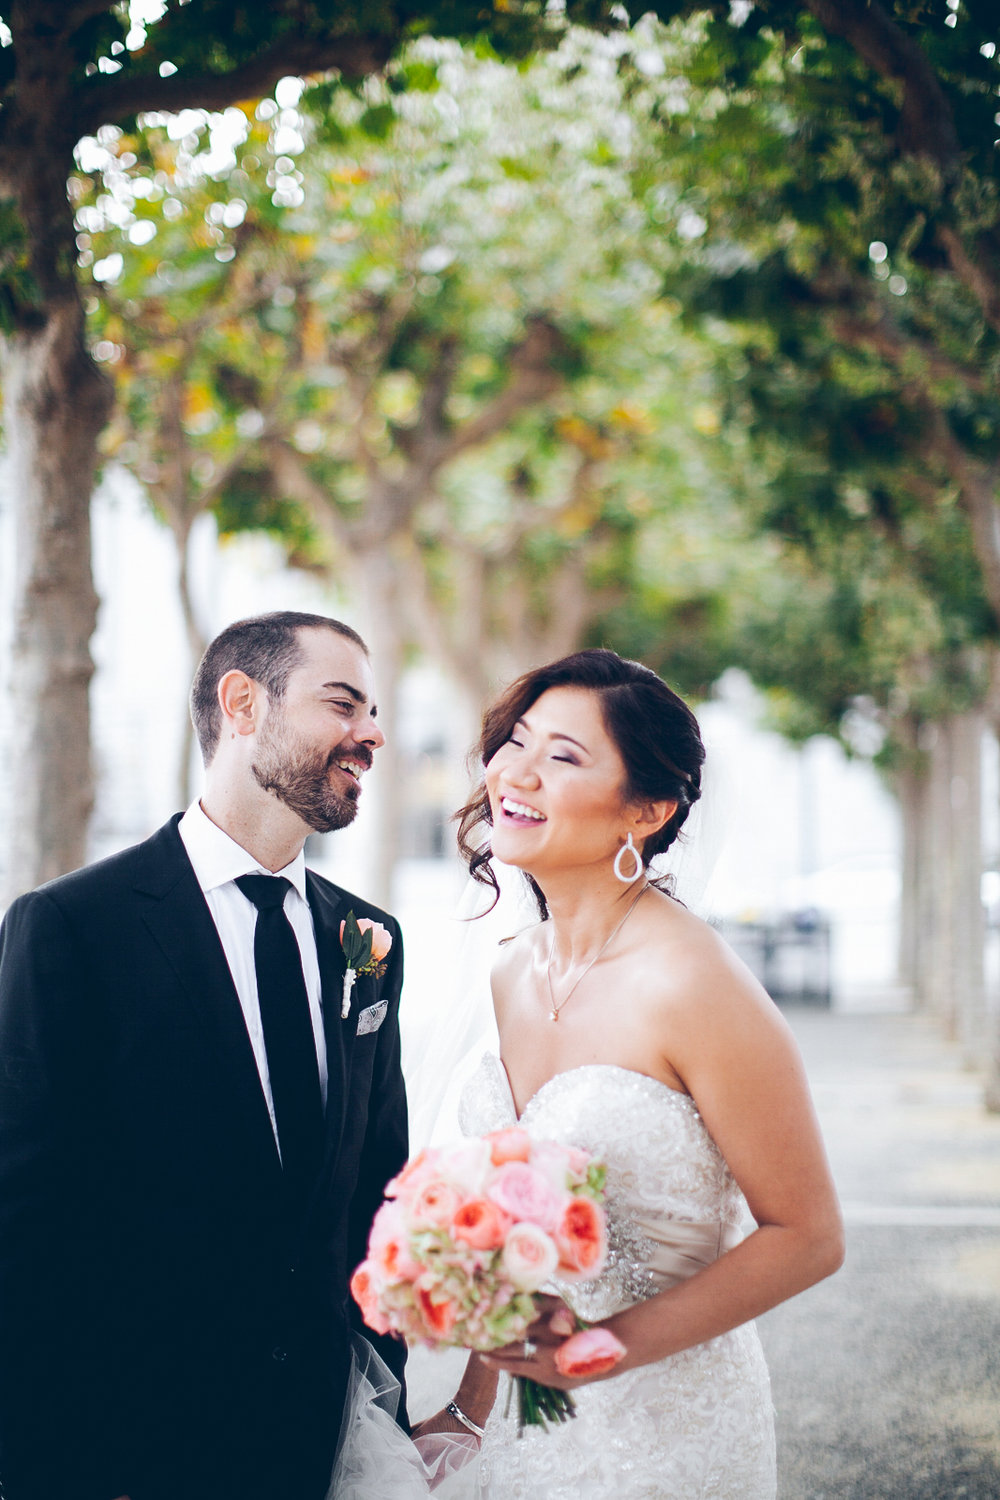 San_francisco_city_hall_wedding_photography_meegan_travis_ebony_siovhan_bokeh_photography_61.jpg